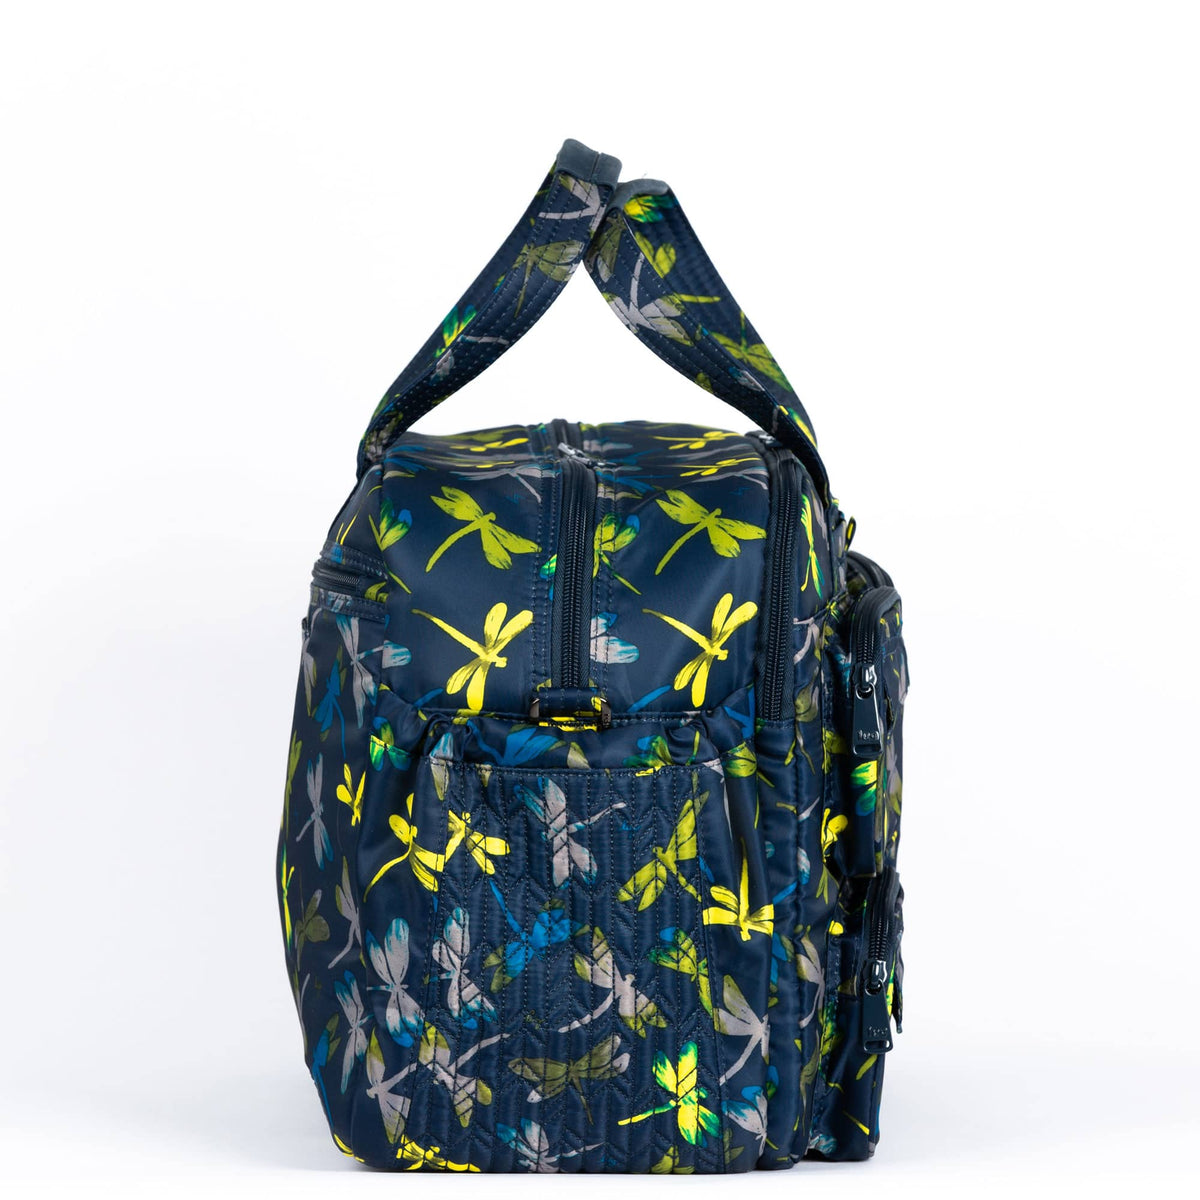 Puddle Jumper Duffel Bag